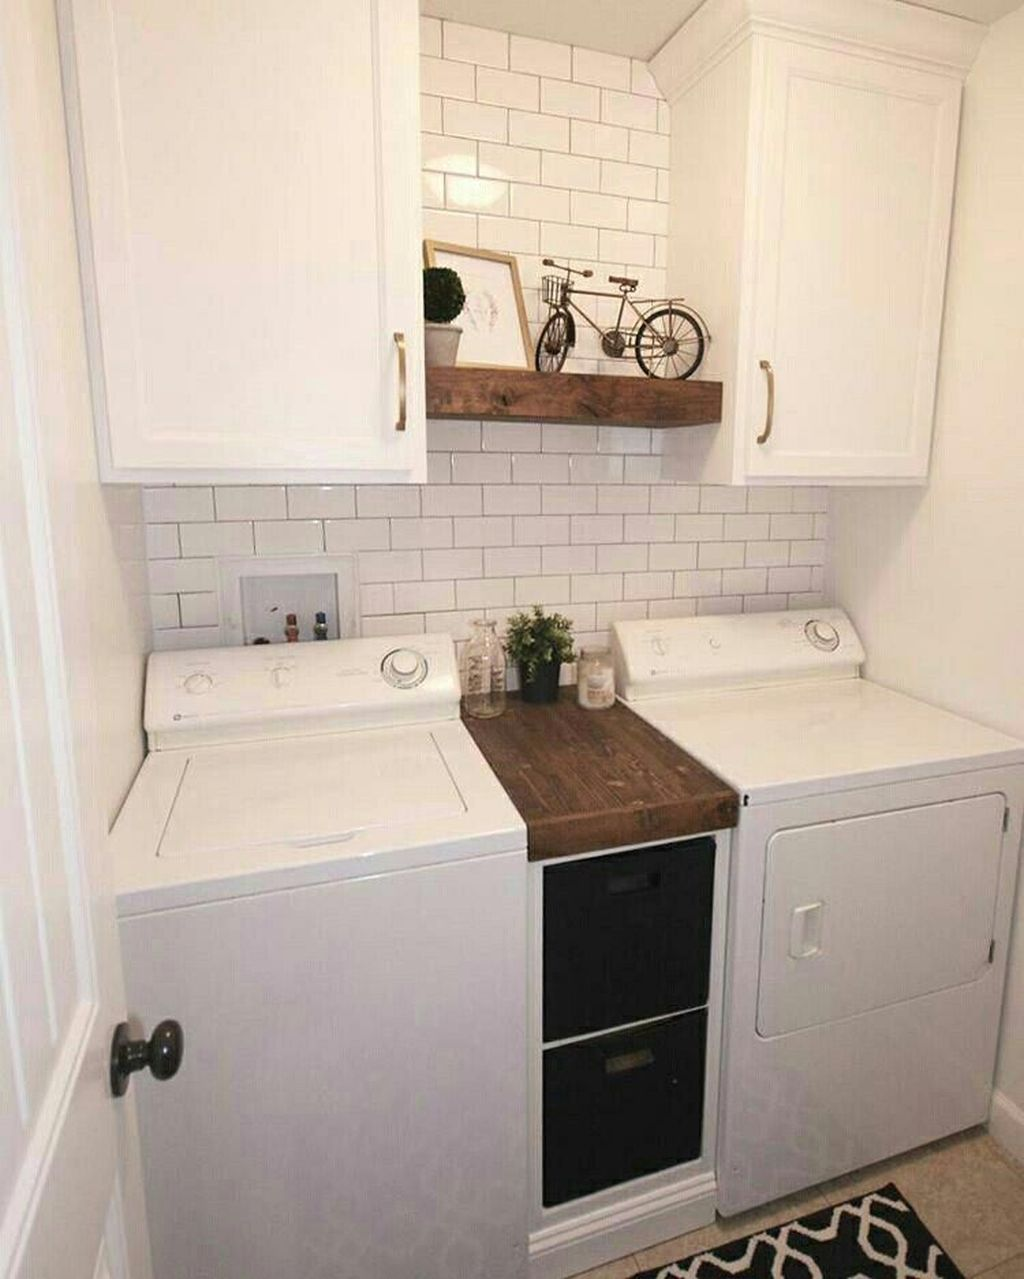 The Best Laundry Room Design Ideas You Must Have 05